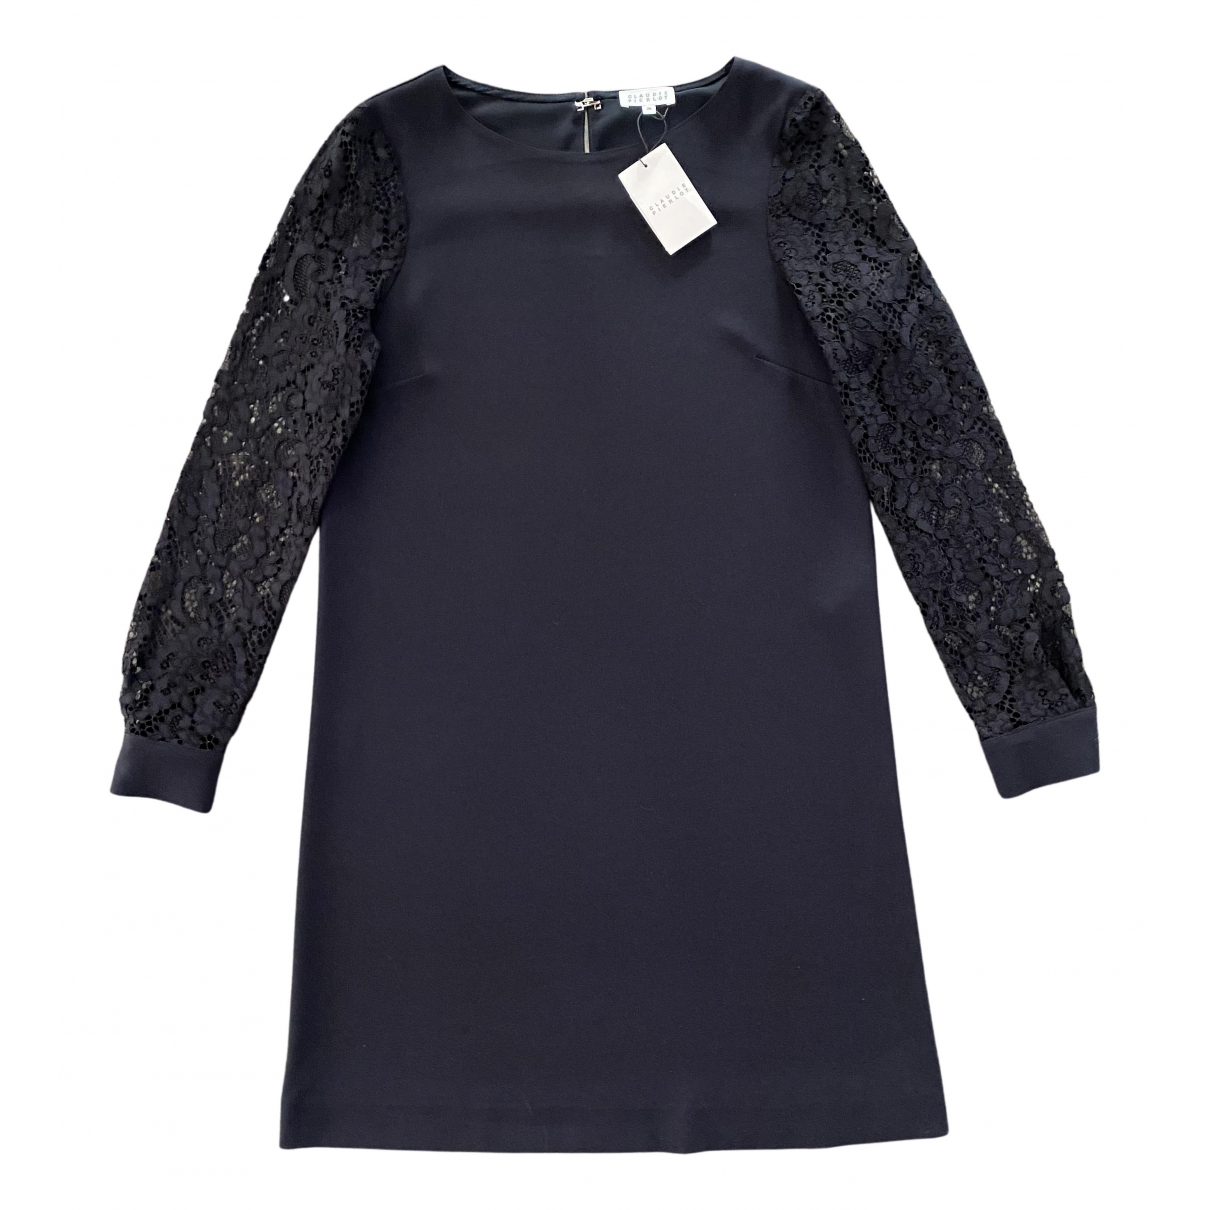 Claudie Pierlot - Robe Fall Winter 2019 pour femme - marine